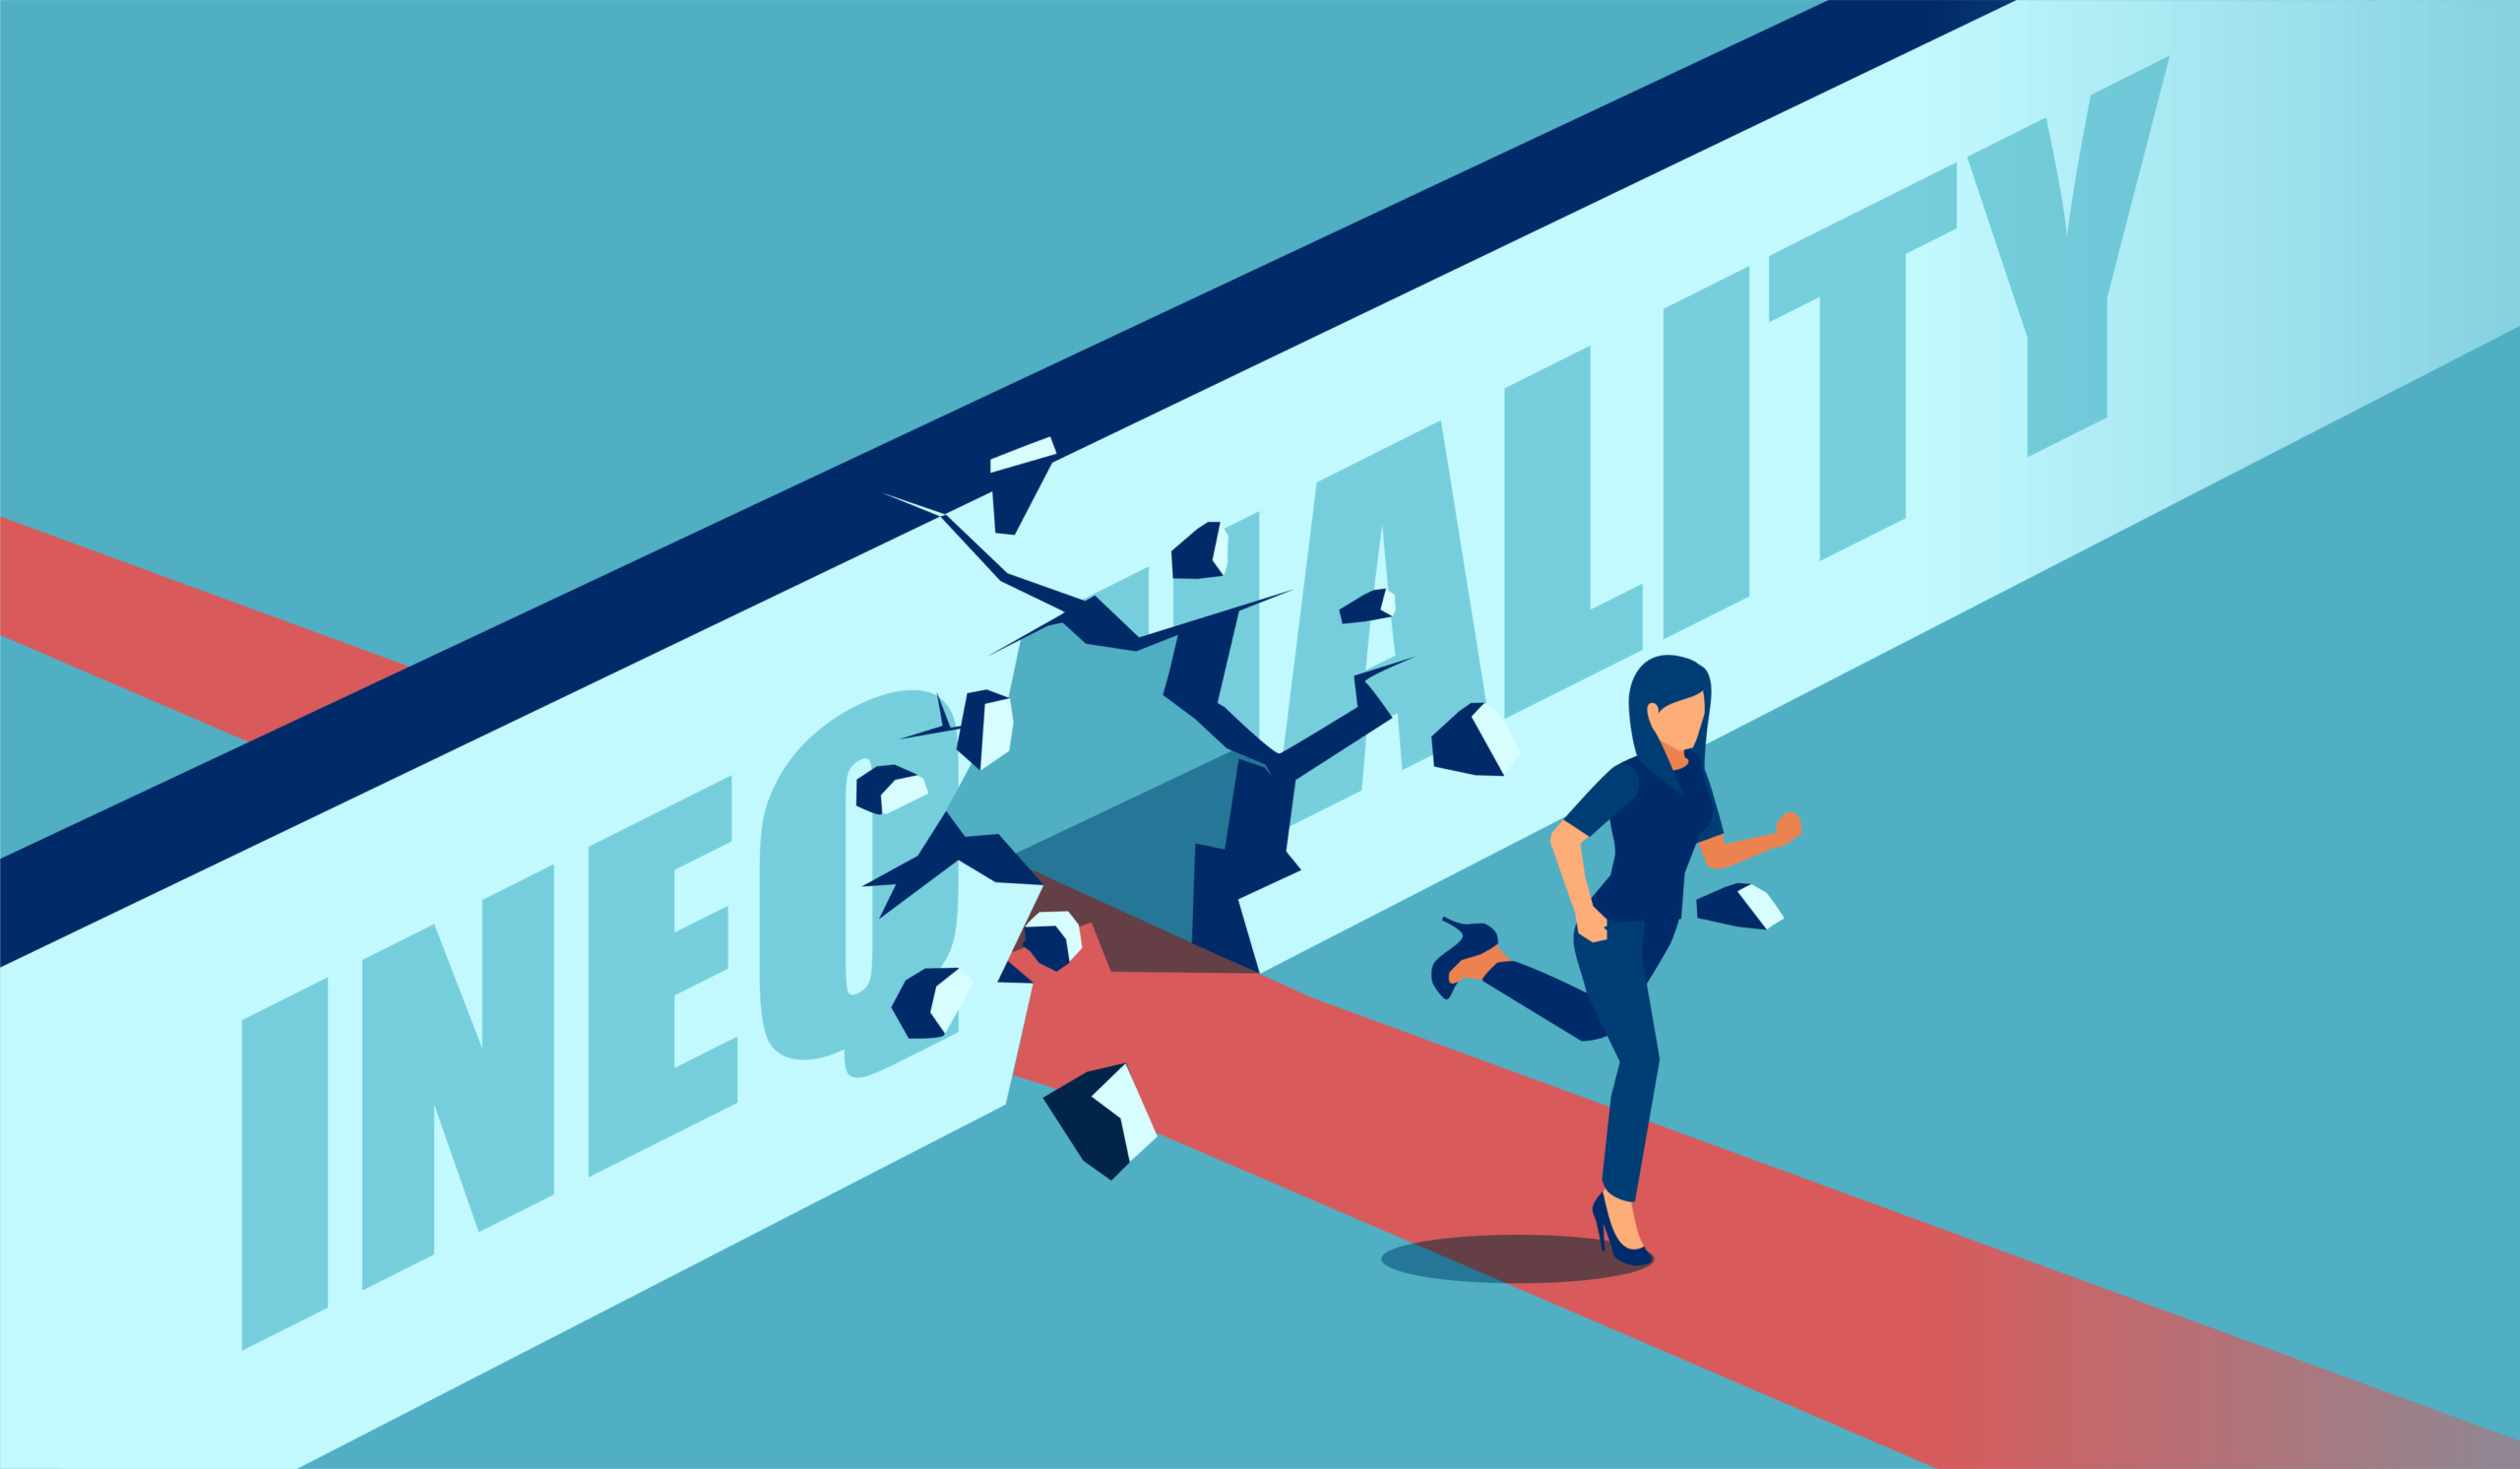 Vector of a strong motivated business woman breaking the wall of inequality